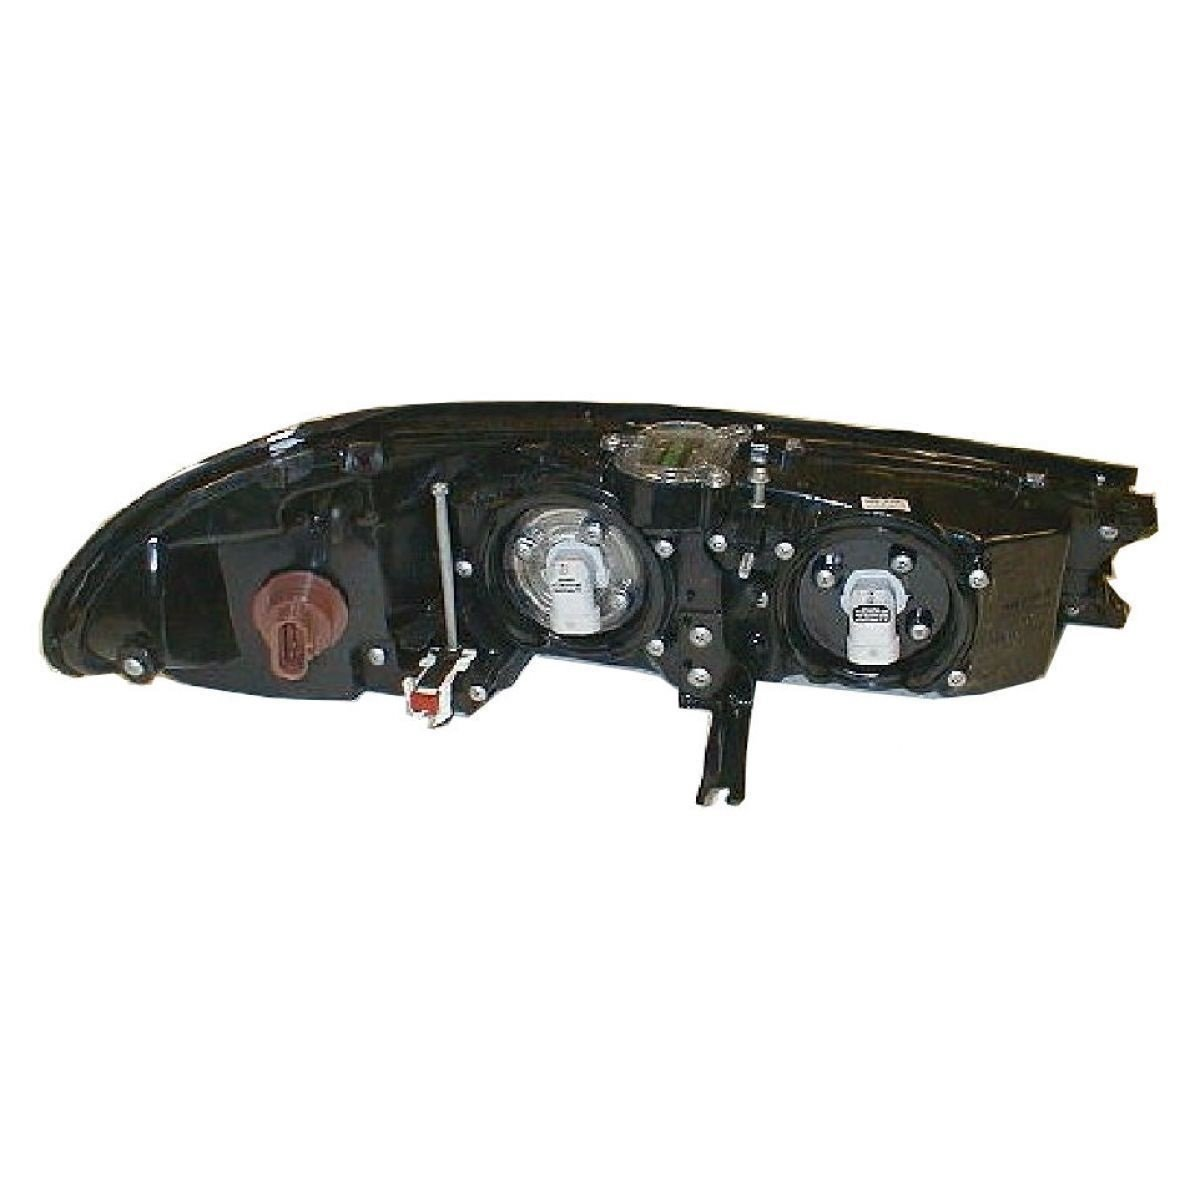 Fleetwood Revolution 2002-2007 RV Motorhome Left Replacement Front Headlight with Bulbs Driver